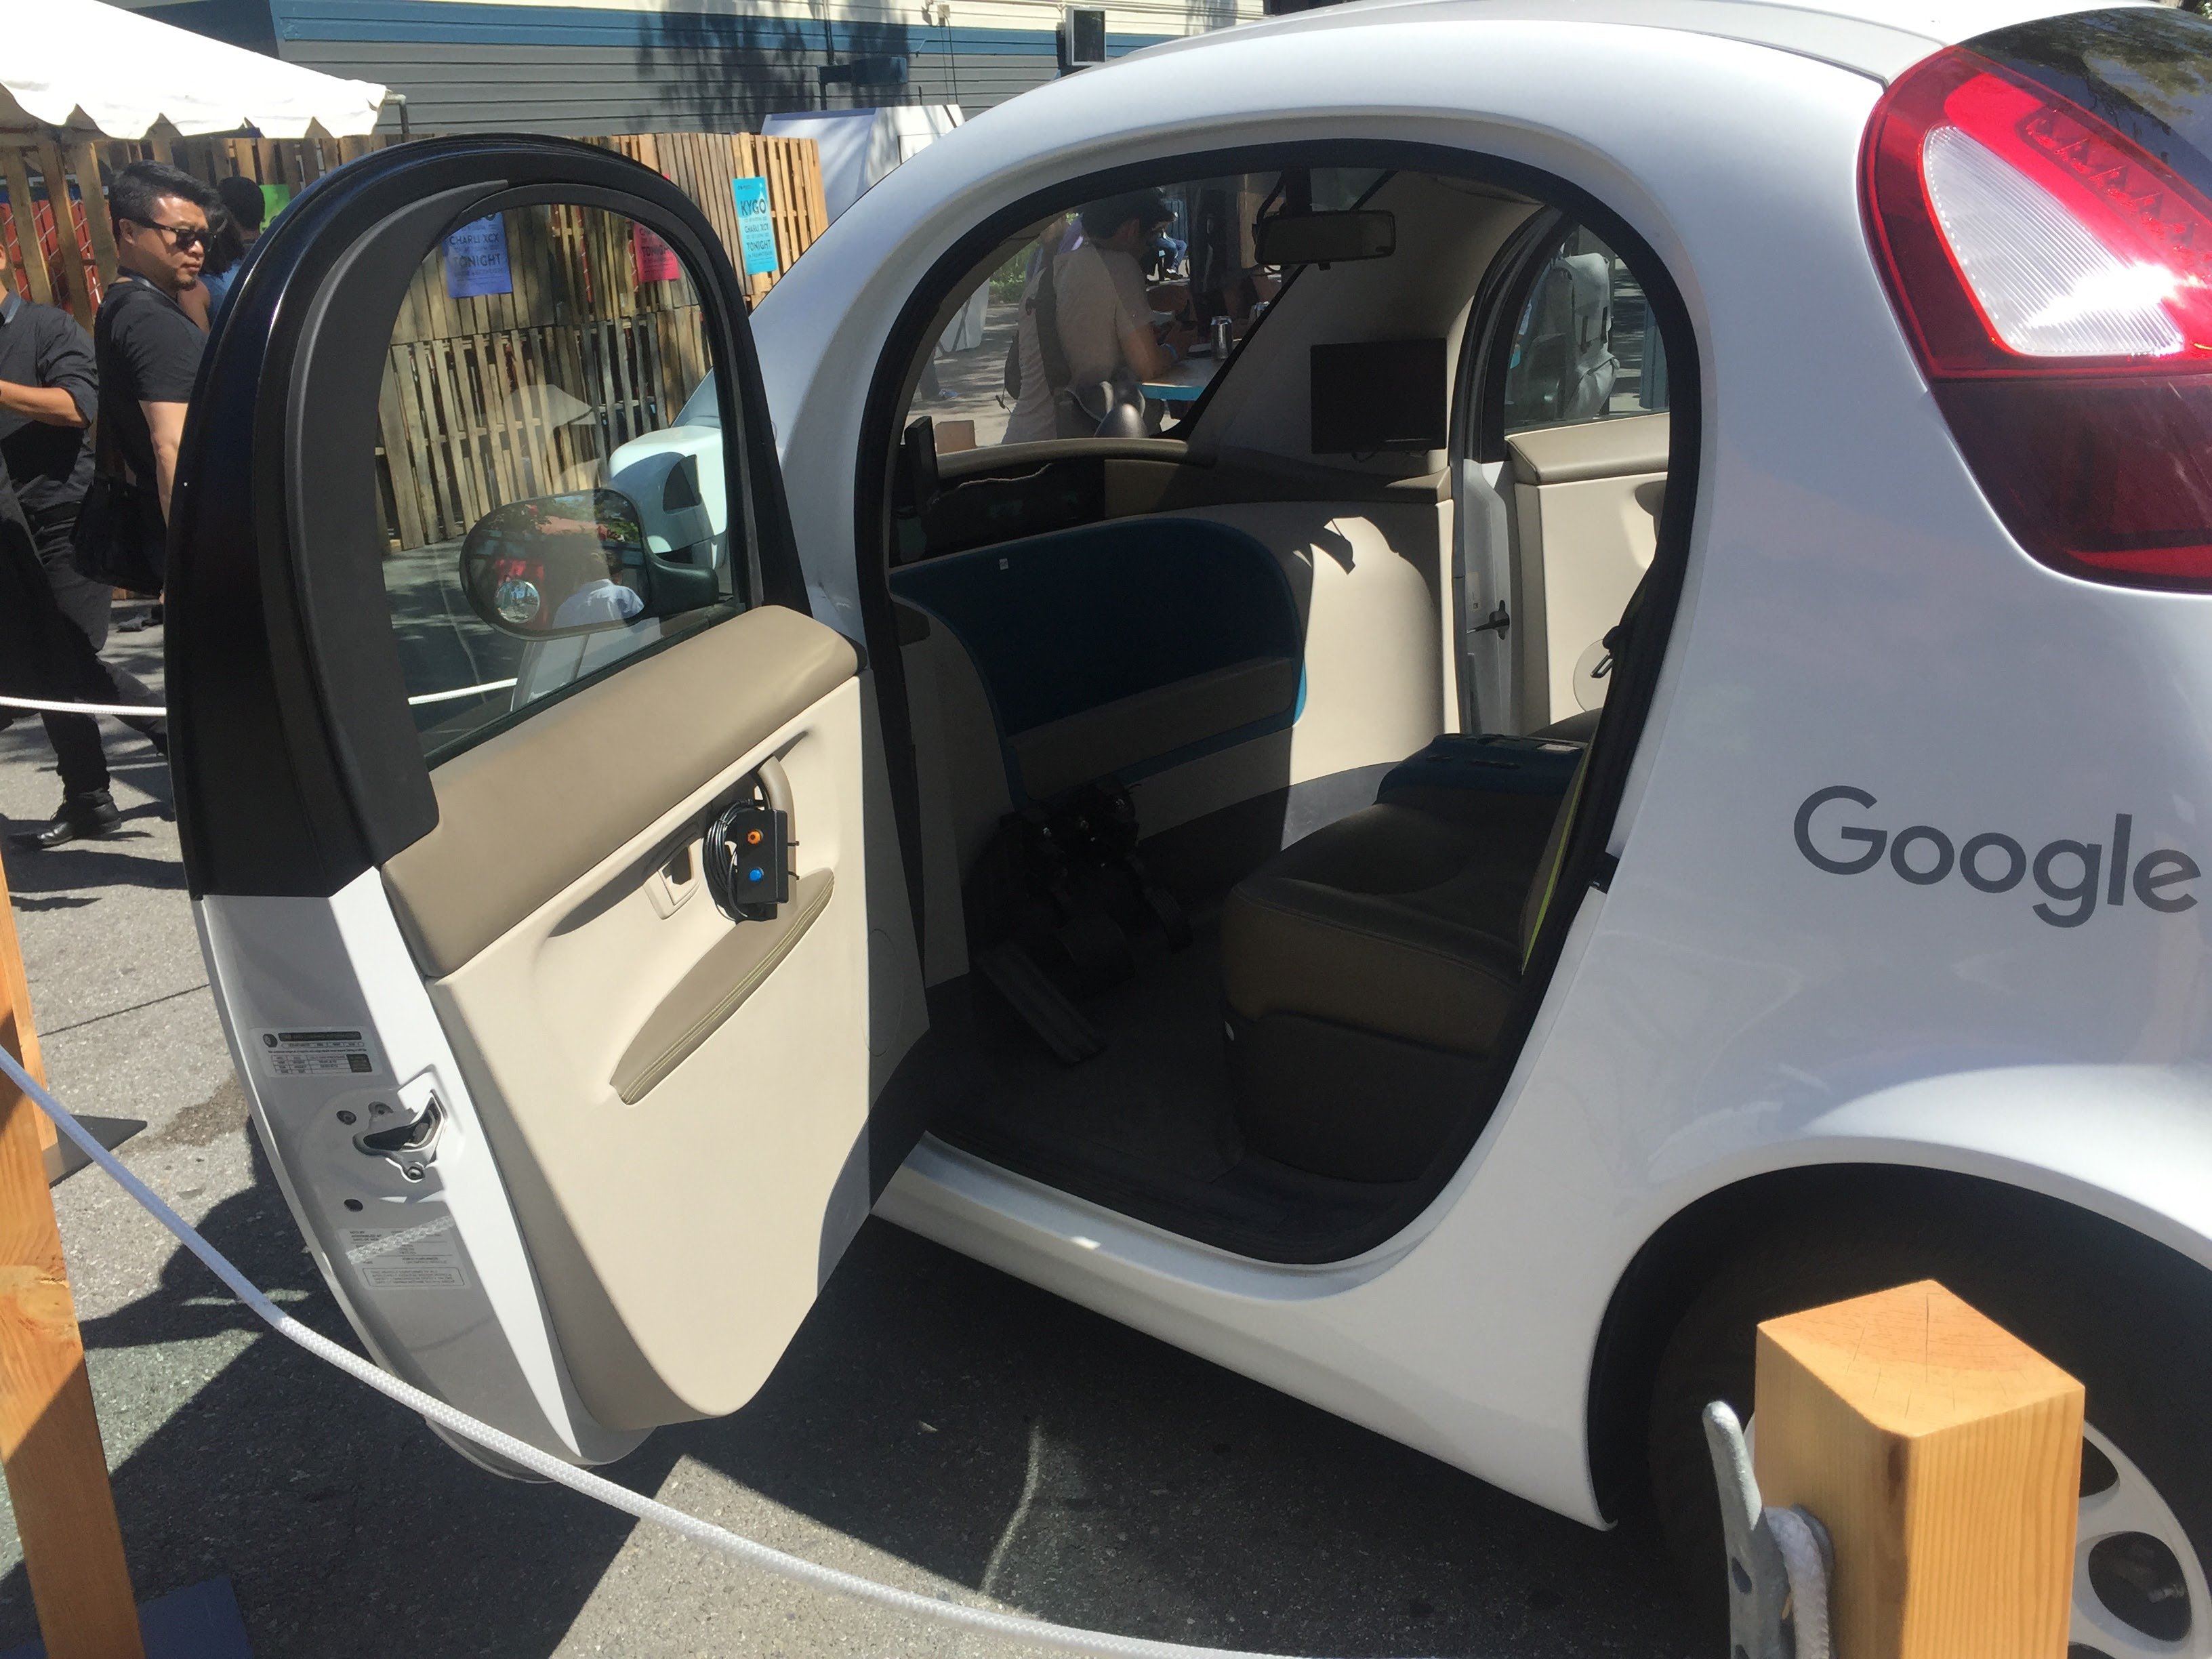 Google lost employees in autonomous car project by paying way too